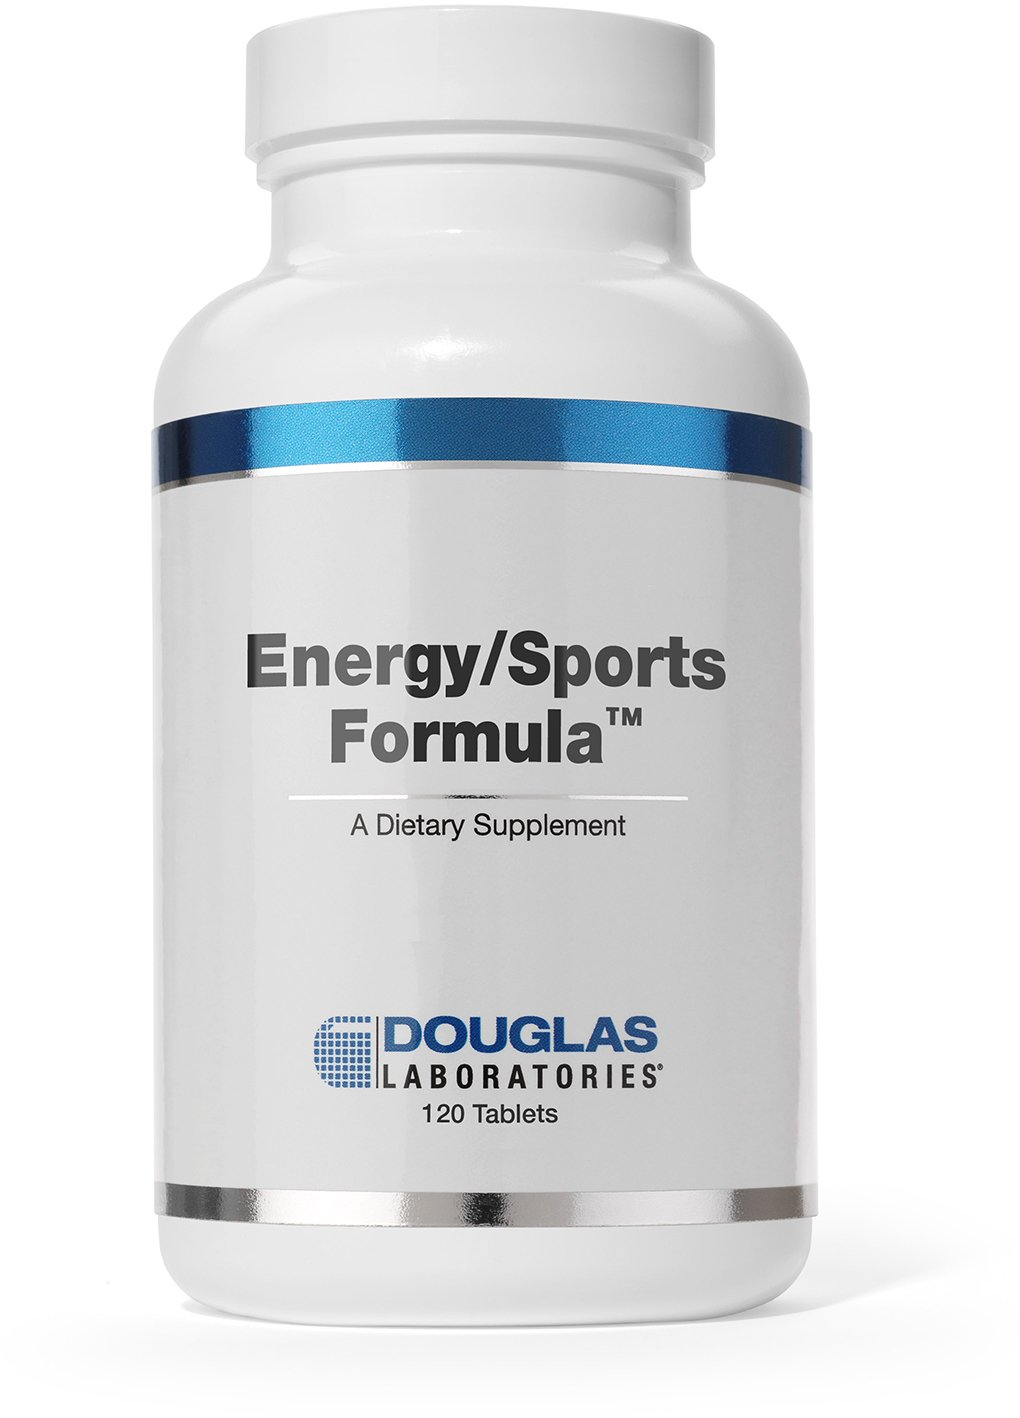 Douglas Laboratories® - Energy/Sports Formula - Multivitamin / Mineral Formula to Support Energy Metabolism* - 120 Tablets